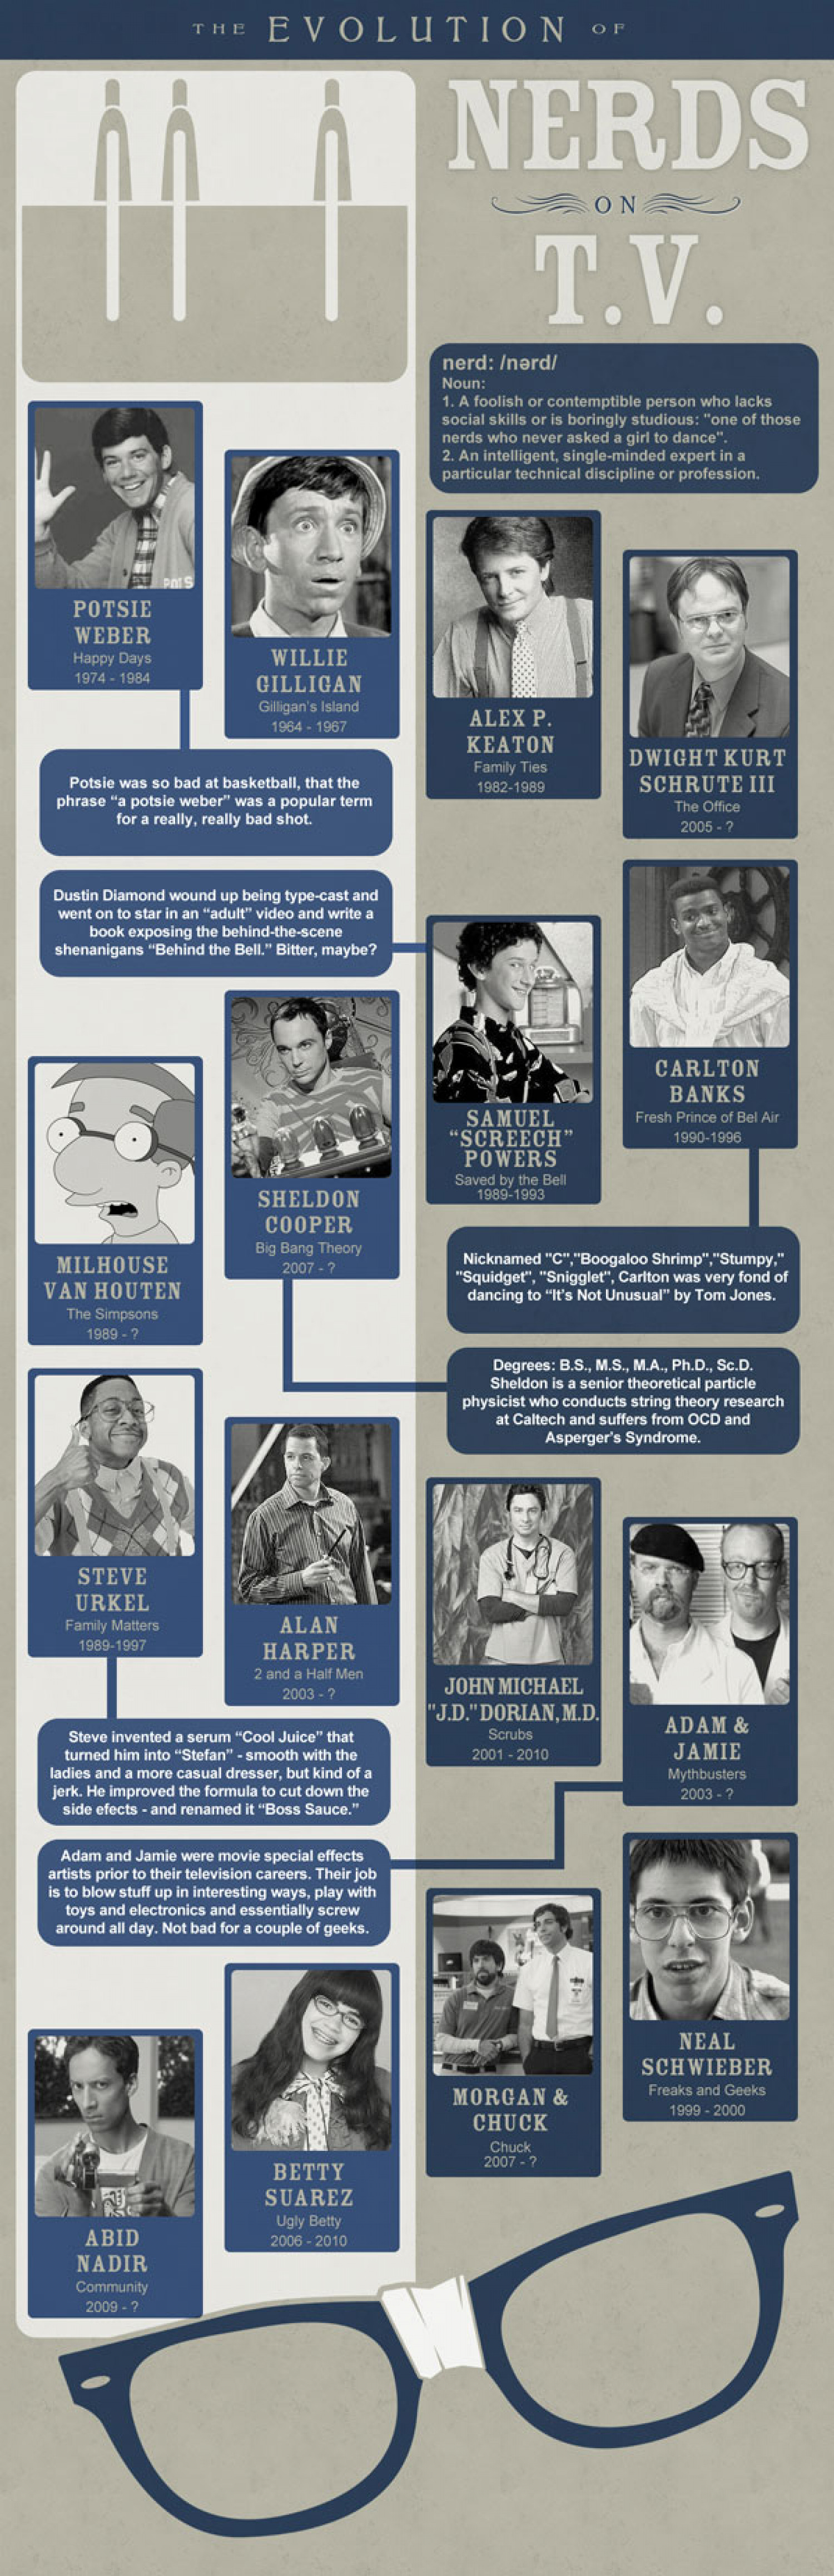 The Evolution of Nerds on TV Infographic